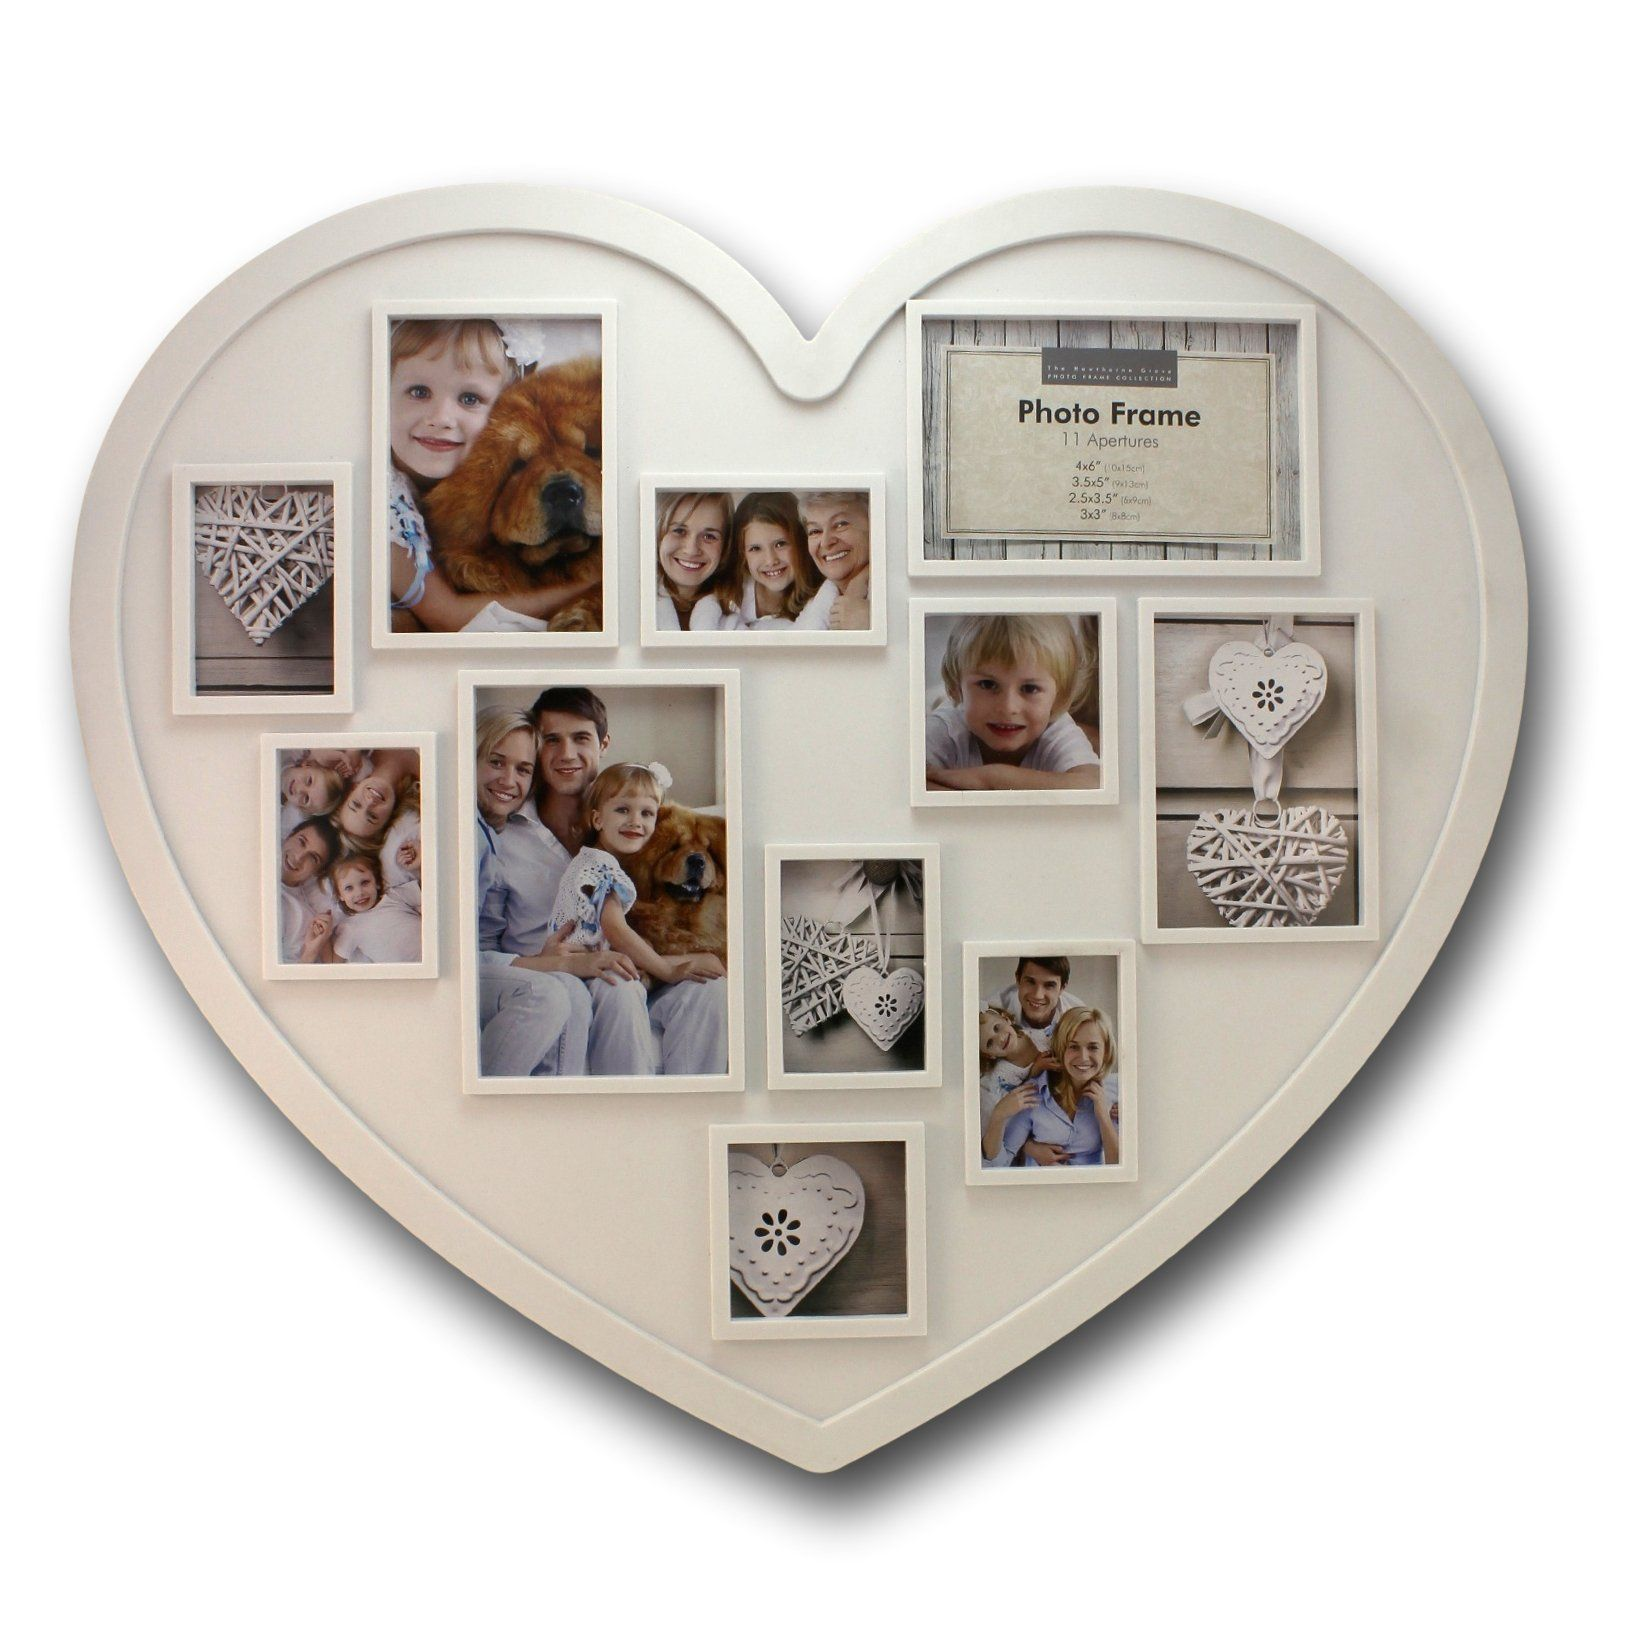 20 X 18 Inch 11 Photo Collage Frame Large Heart Shaped White